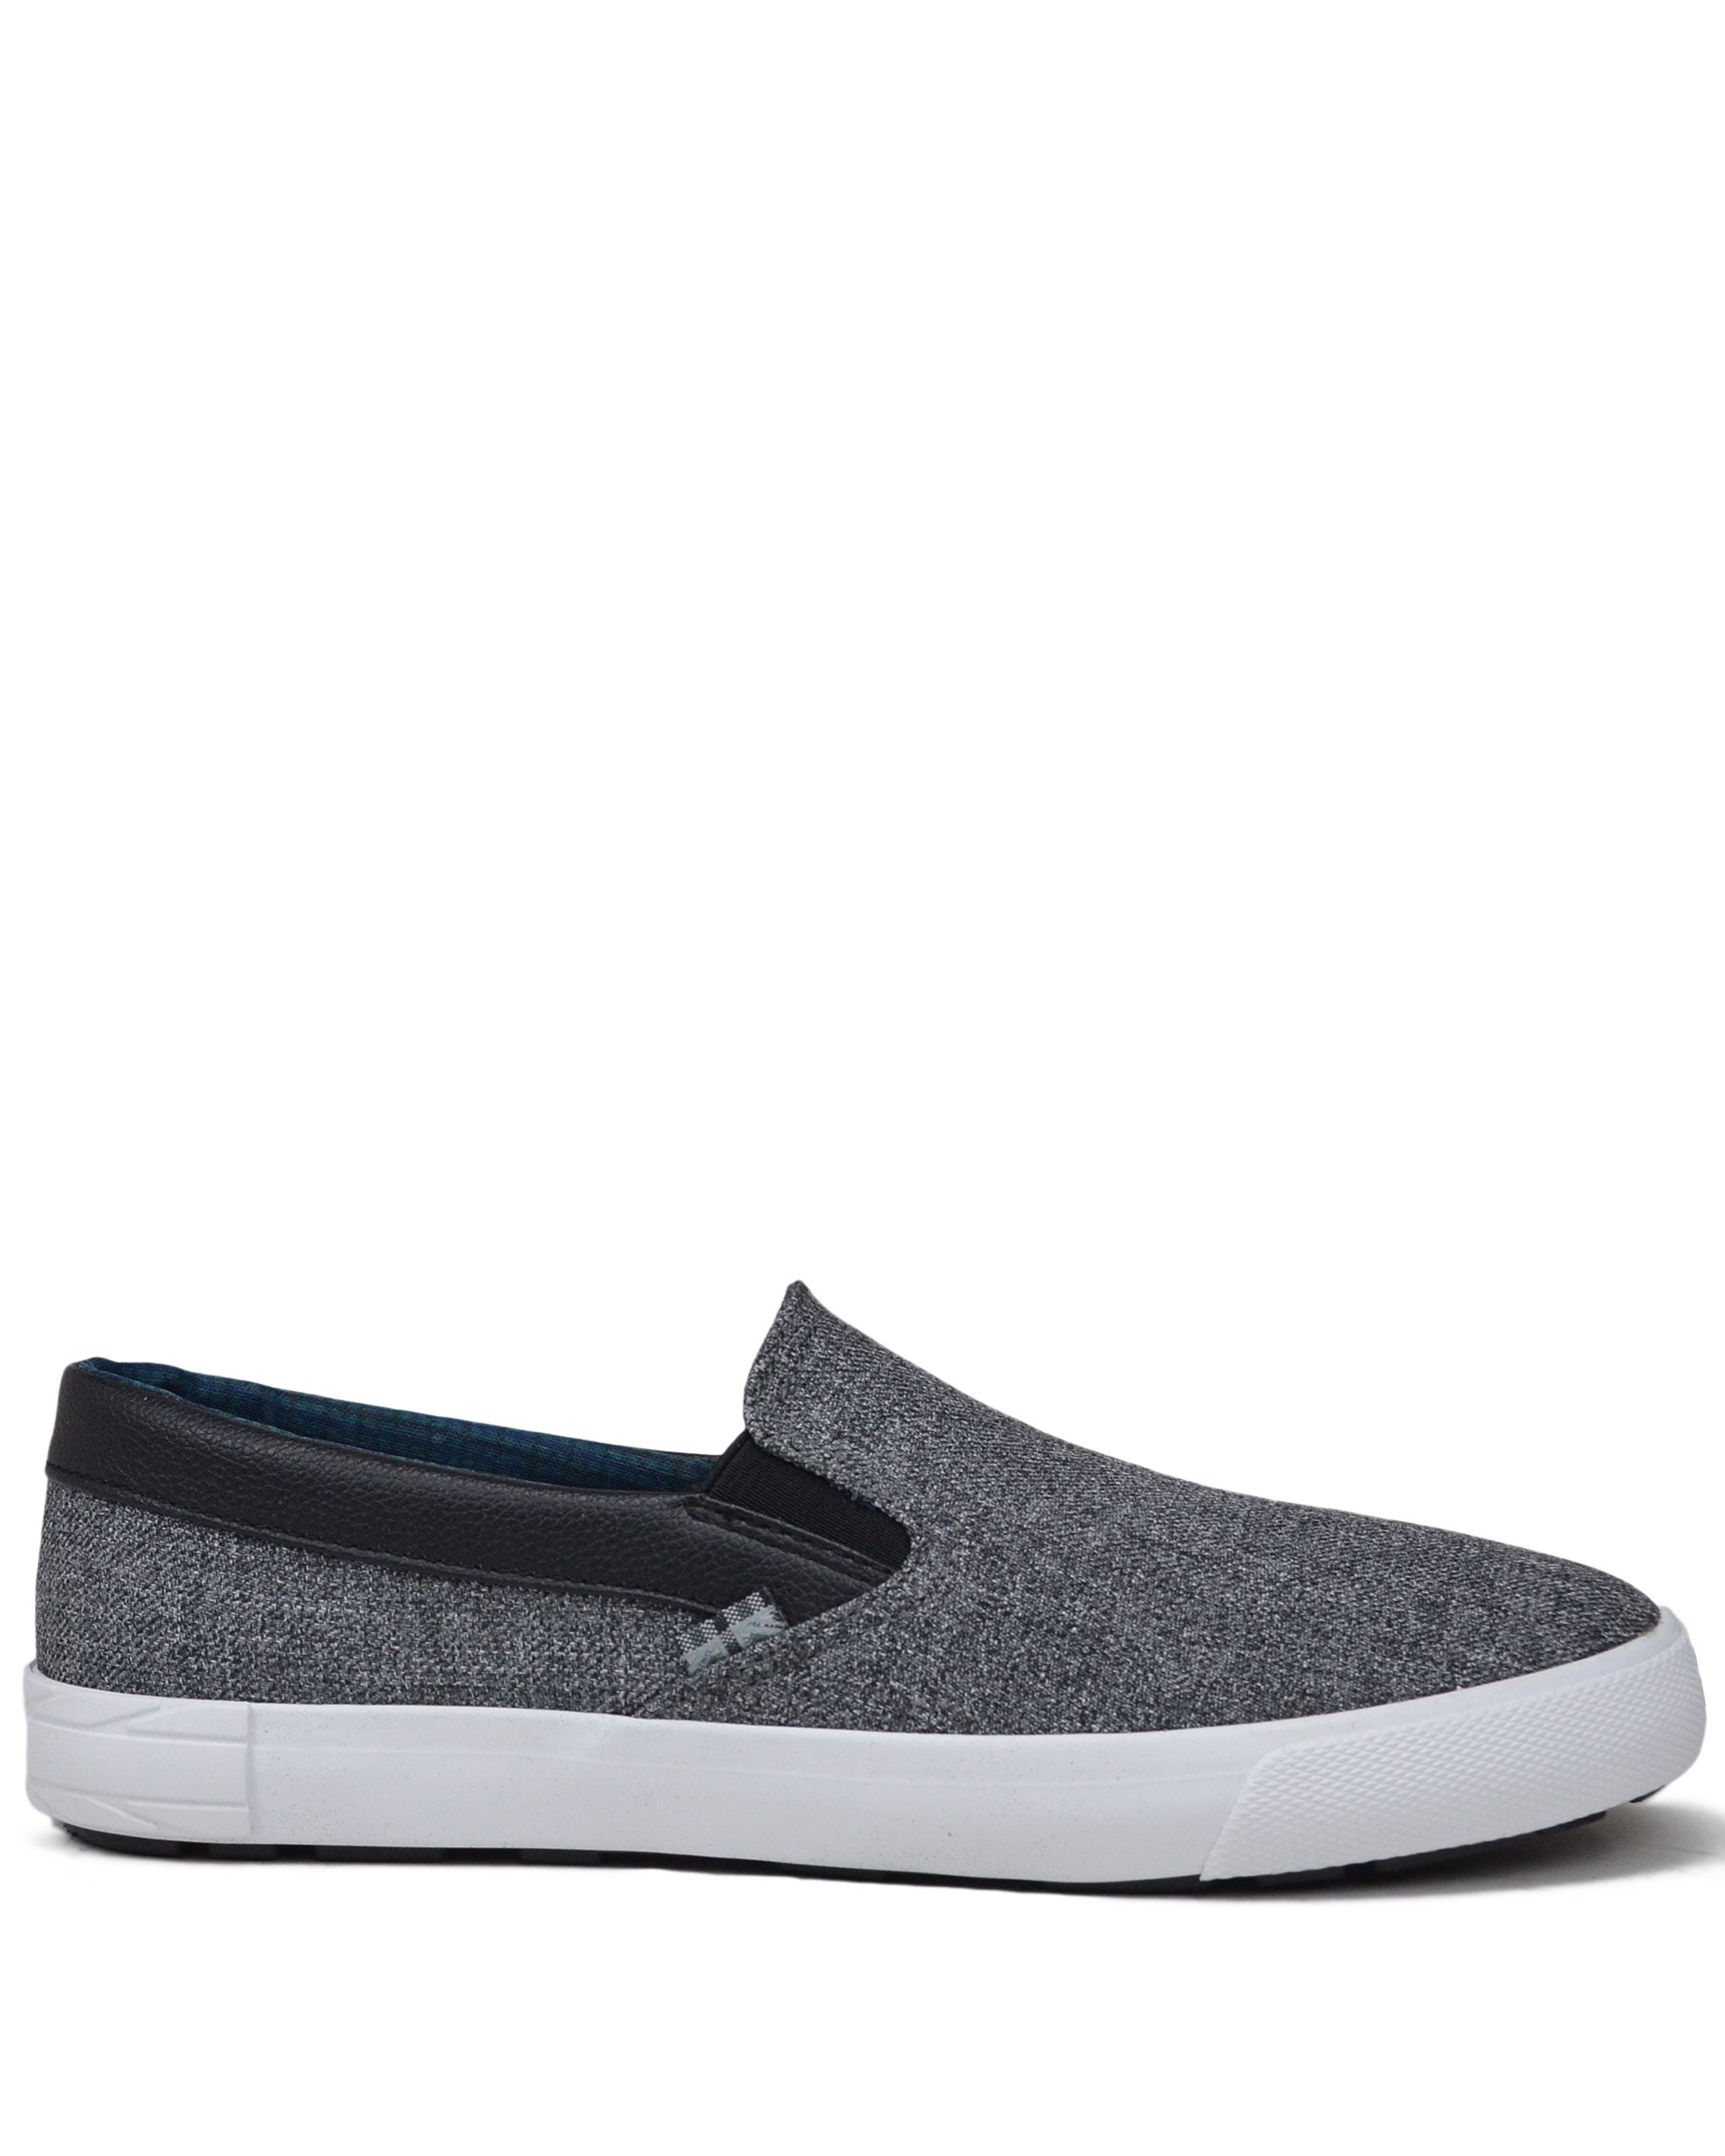 Pete Denim Slip-on Sneaker - Grey Heather